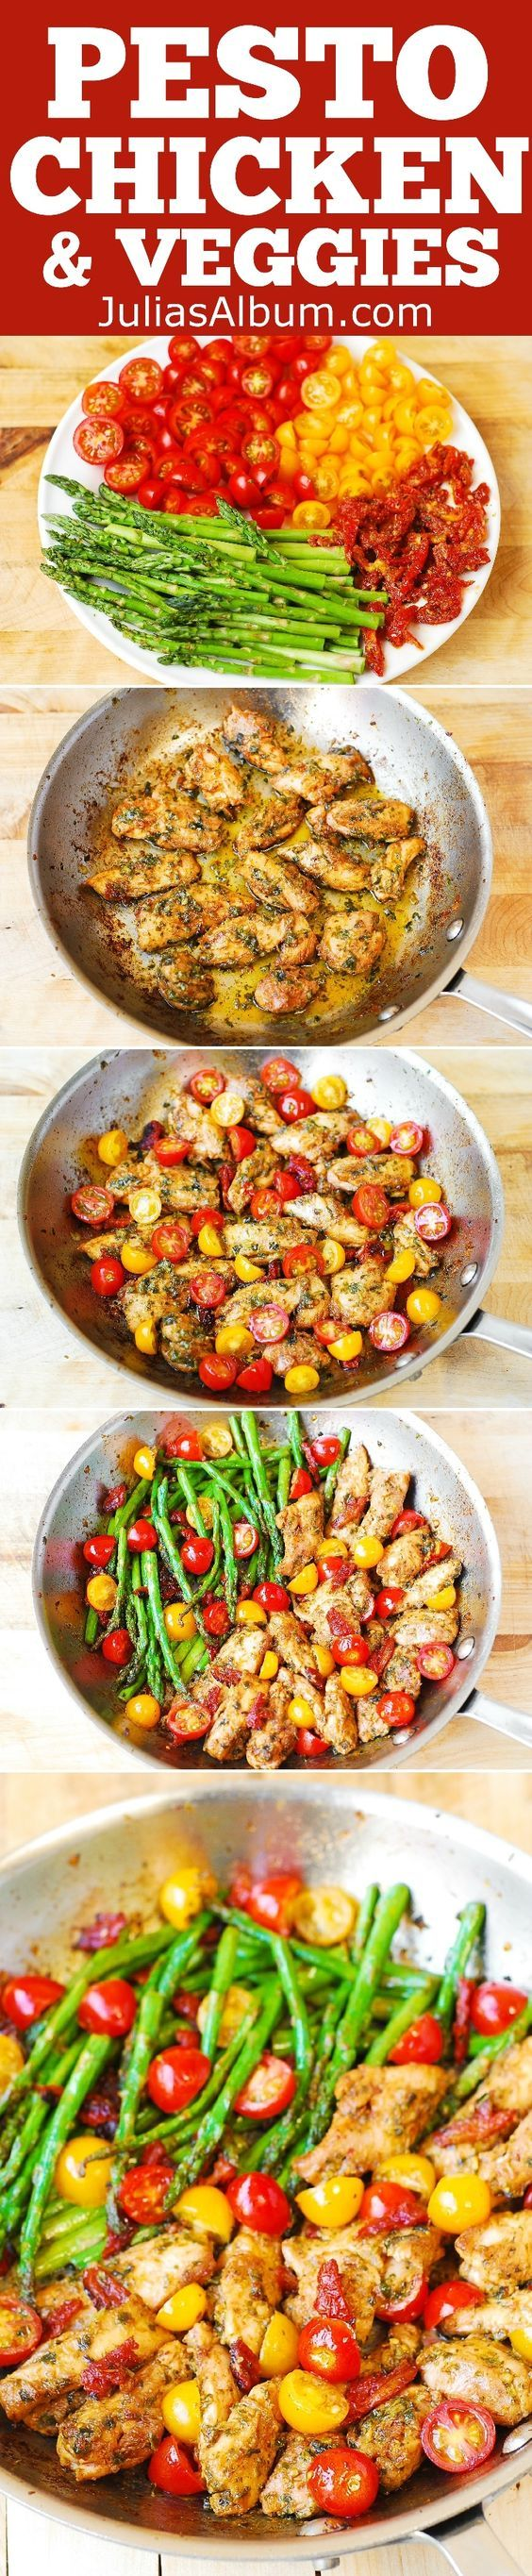 OnePan Pesto Chicken and Veggies – sundried tomatoes asparagus cherry tomatoes. Healthy gluten free Mediterranean style recipe packed with fiber (vegetables) and protein (chicken). Easy 30 minute recipe.